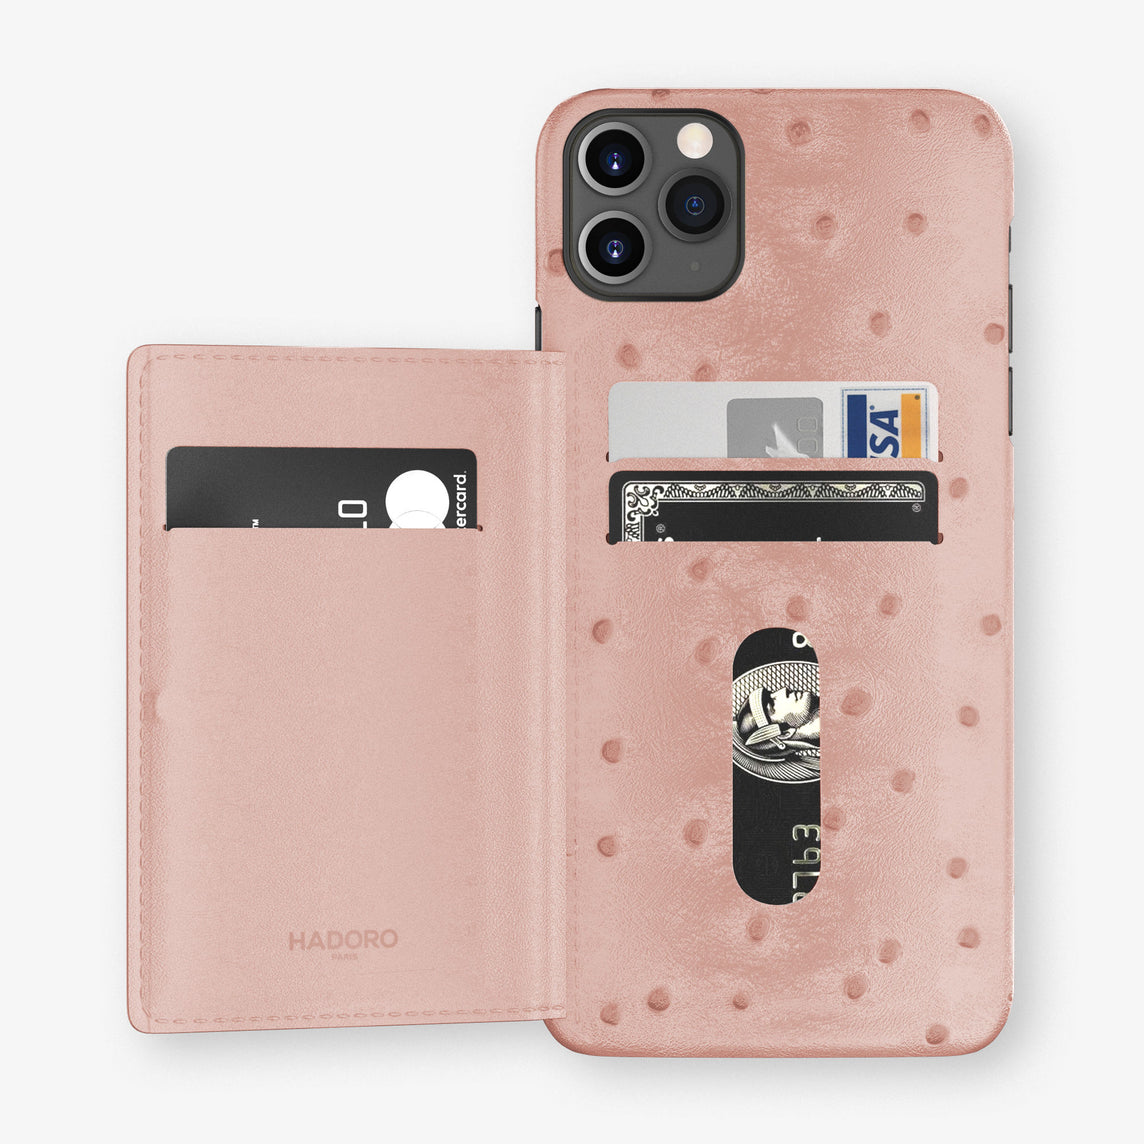 Ostrich Card Holder Flap Case iPhone 11 Pro Max | Pink - Black